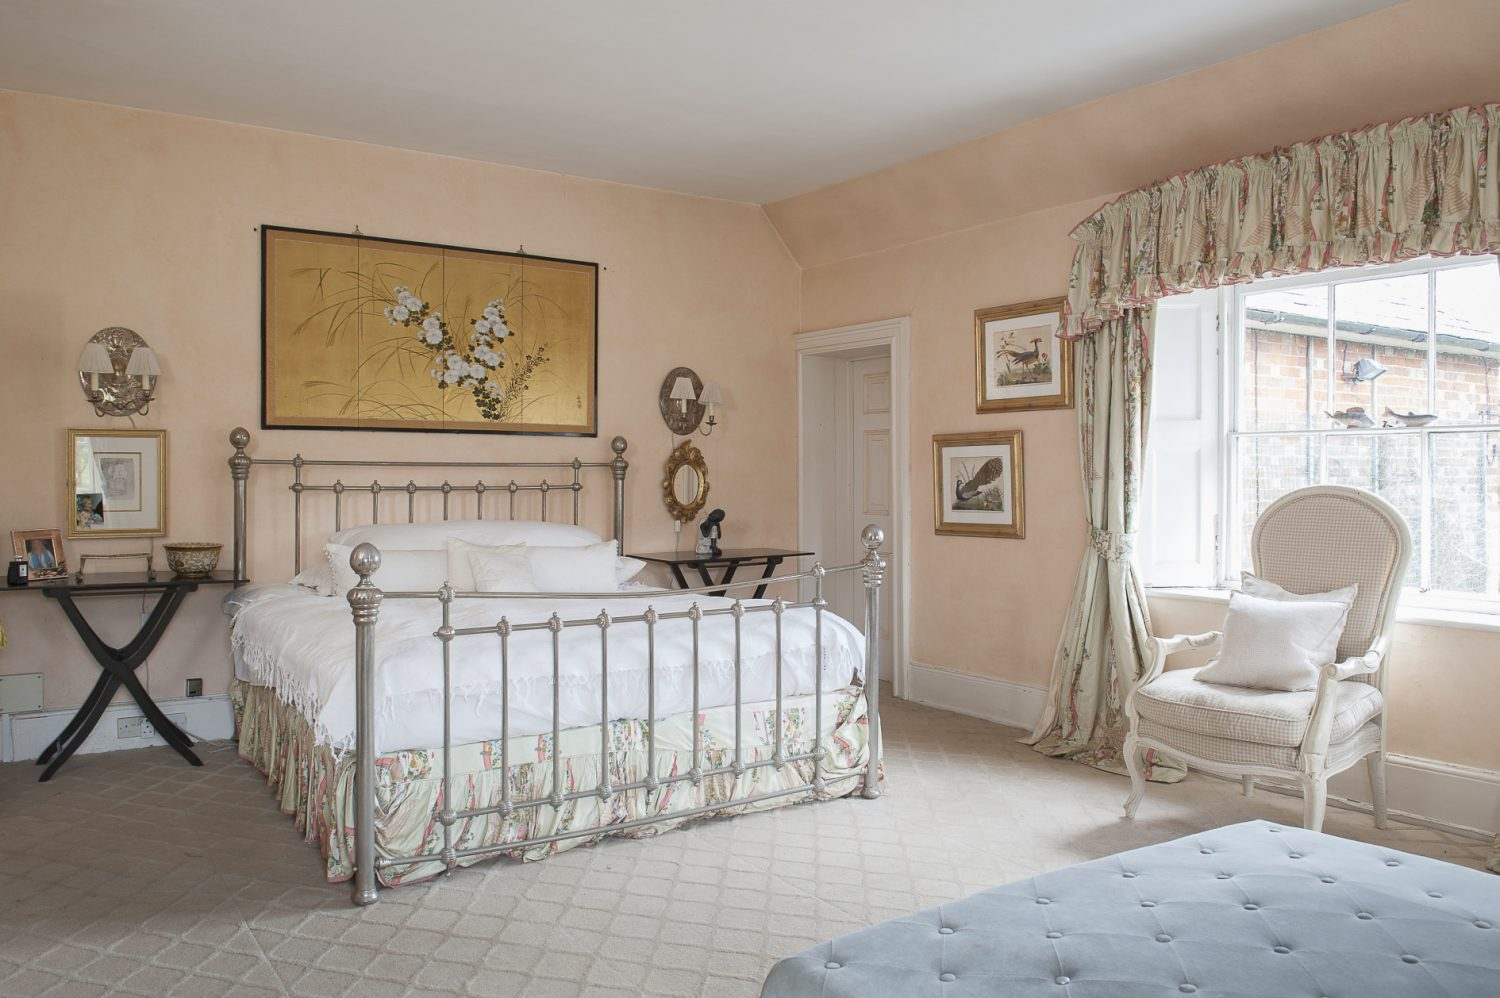 Peachy cream paintwork offsets oriental paintings of birds and flowers, while light dances off the metal bedstead and gilt light sconces. A marble fireplace at the foot of the bed framed on either side by heavy, patterned curtains, gives the room a sense of grandeur as well as softness